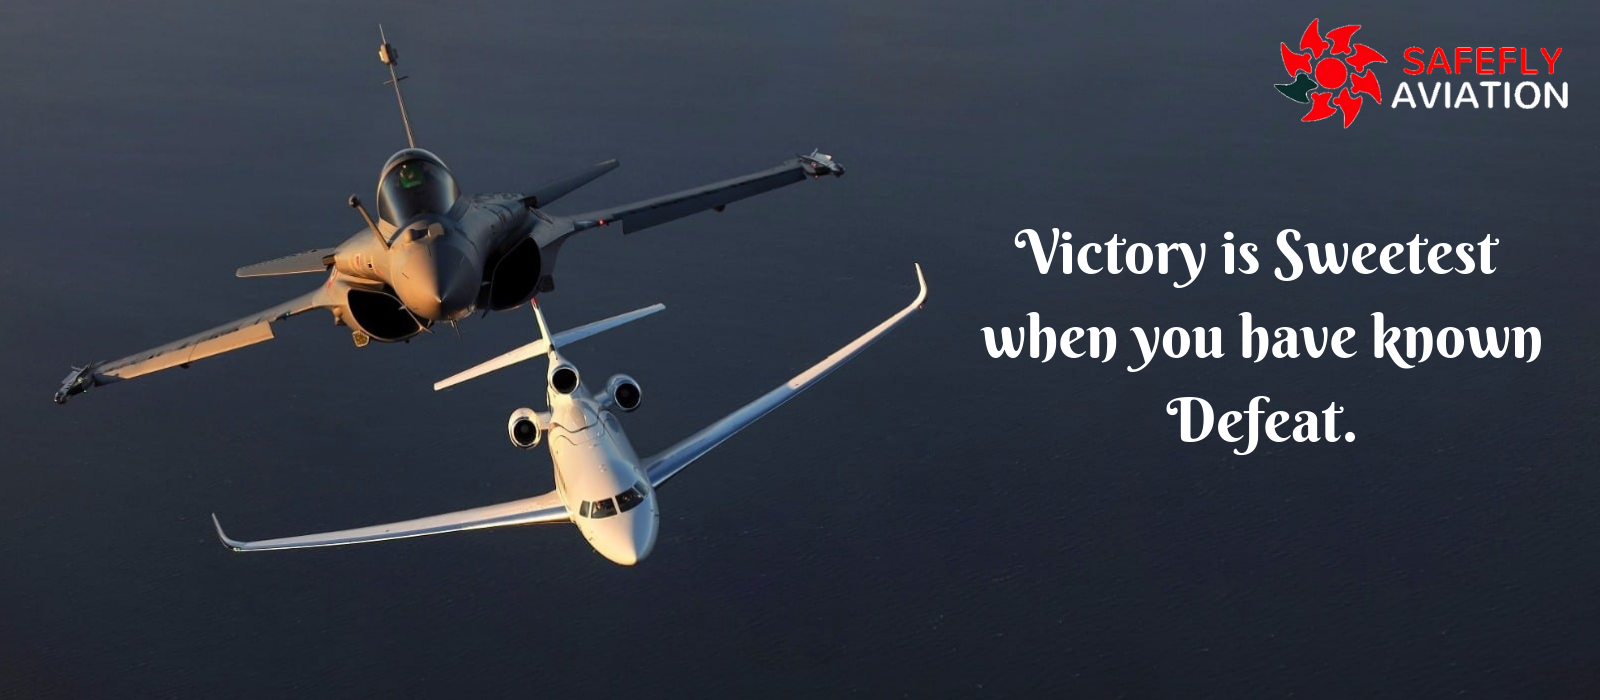 Victory is Sweetest in 2020 Aviation quotes, Aviation